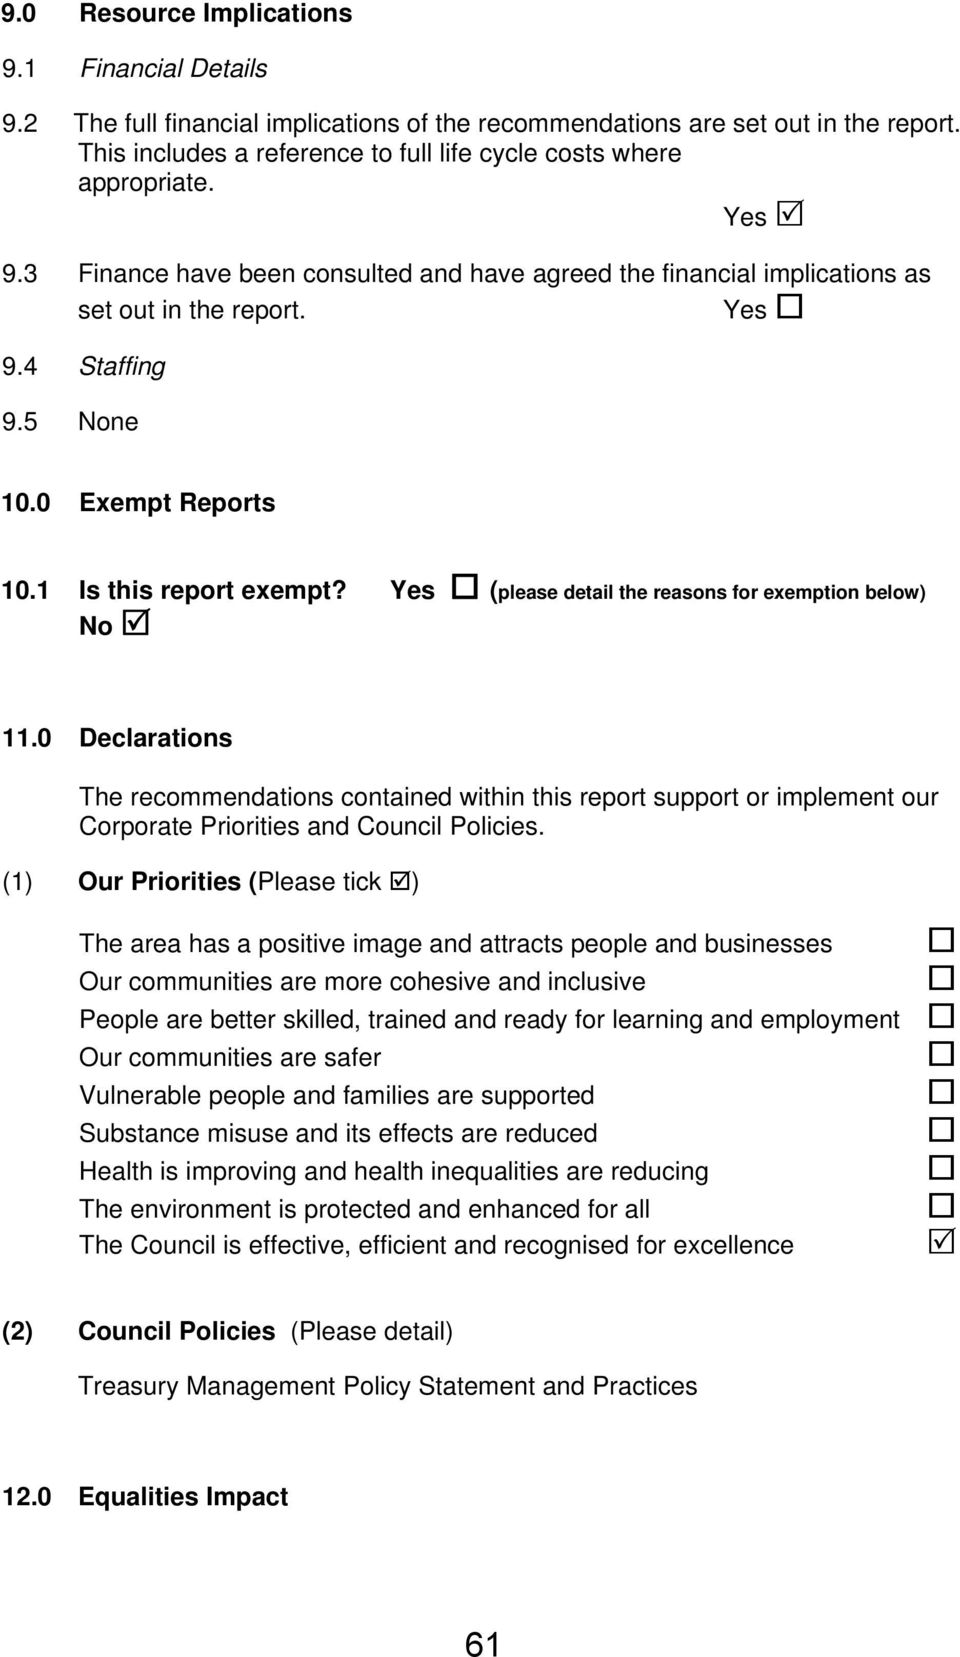 5 None 10.0 Exempt Reports 10.1 Is this report exempt? Yes (please detail the reasons for exemption below) No 11.